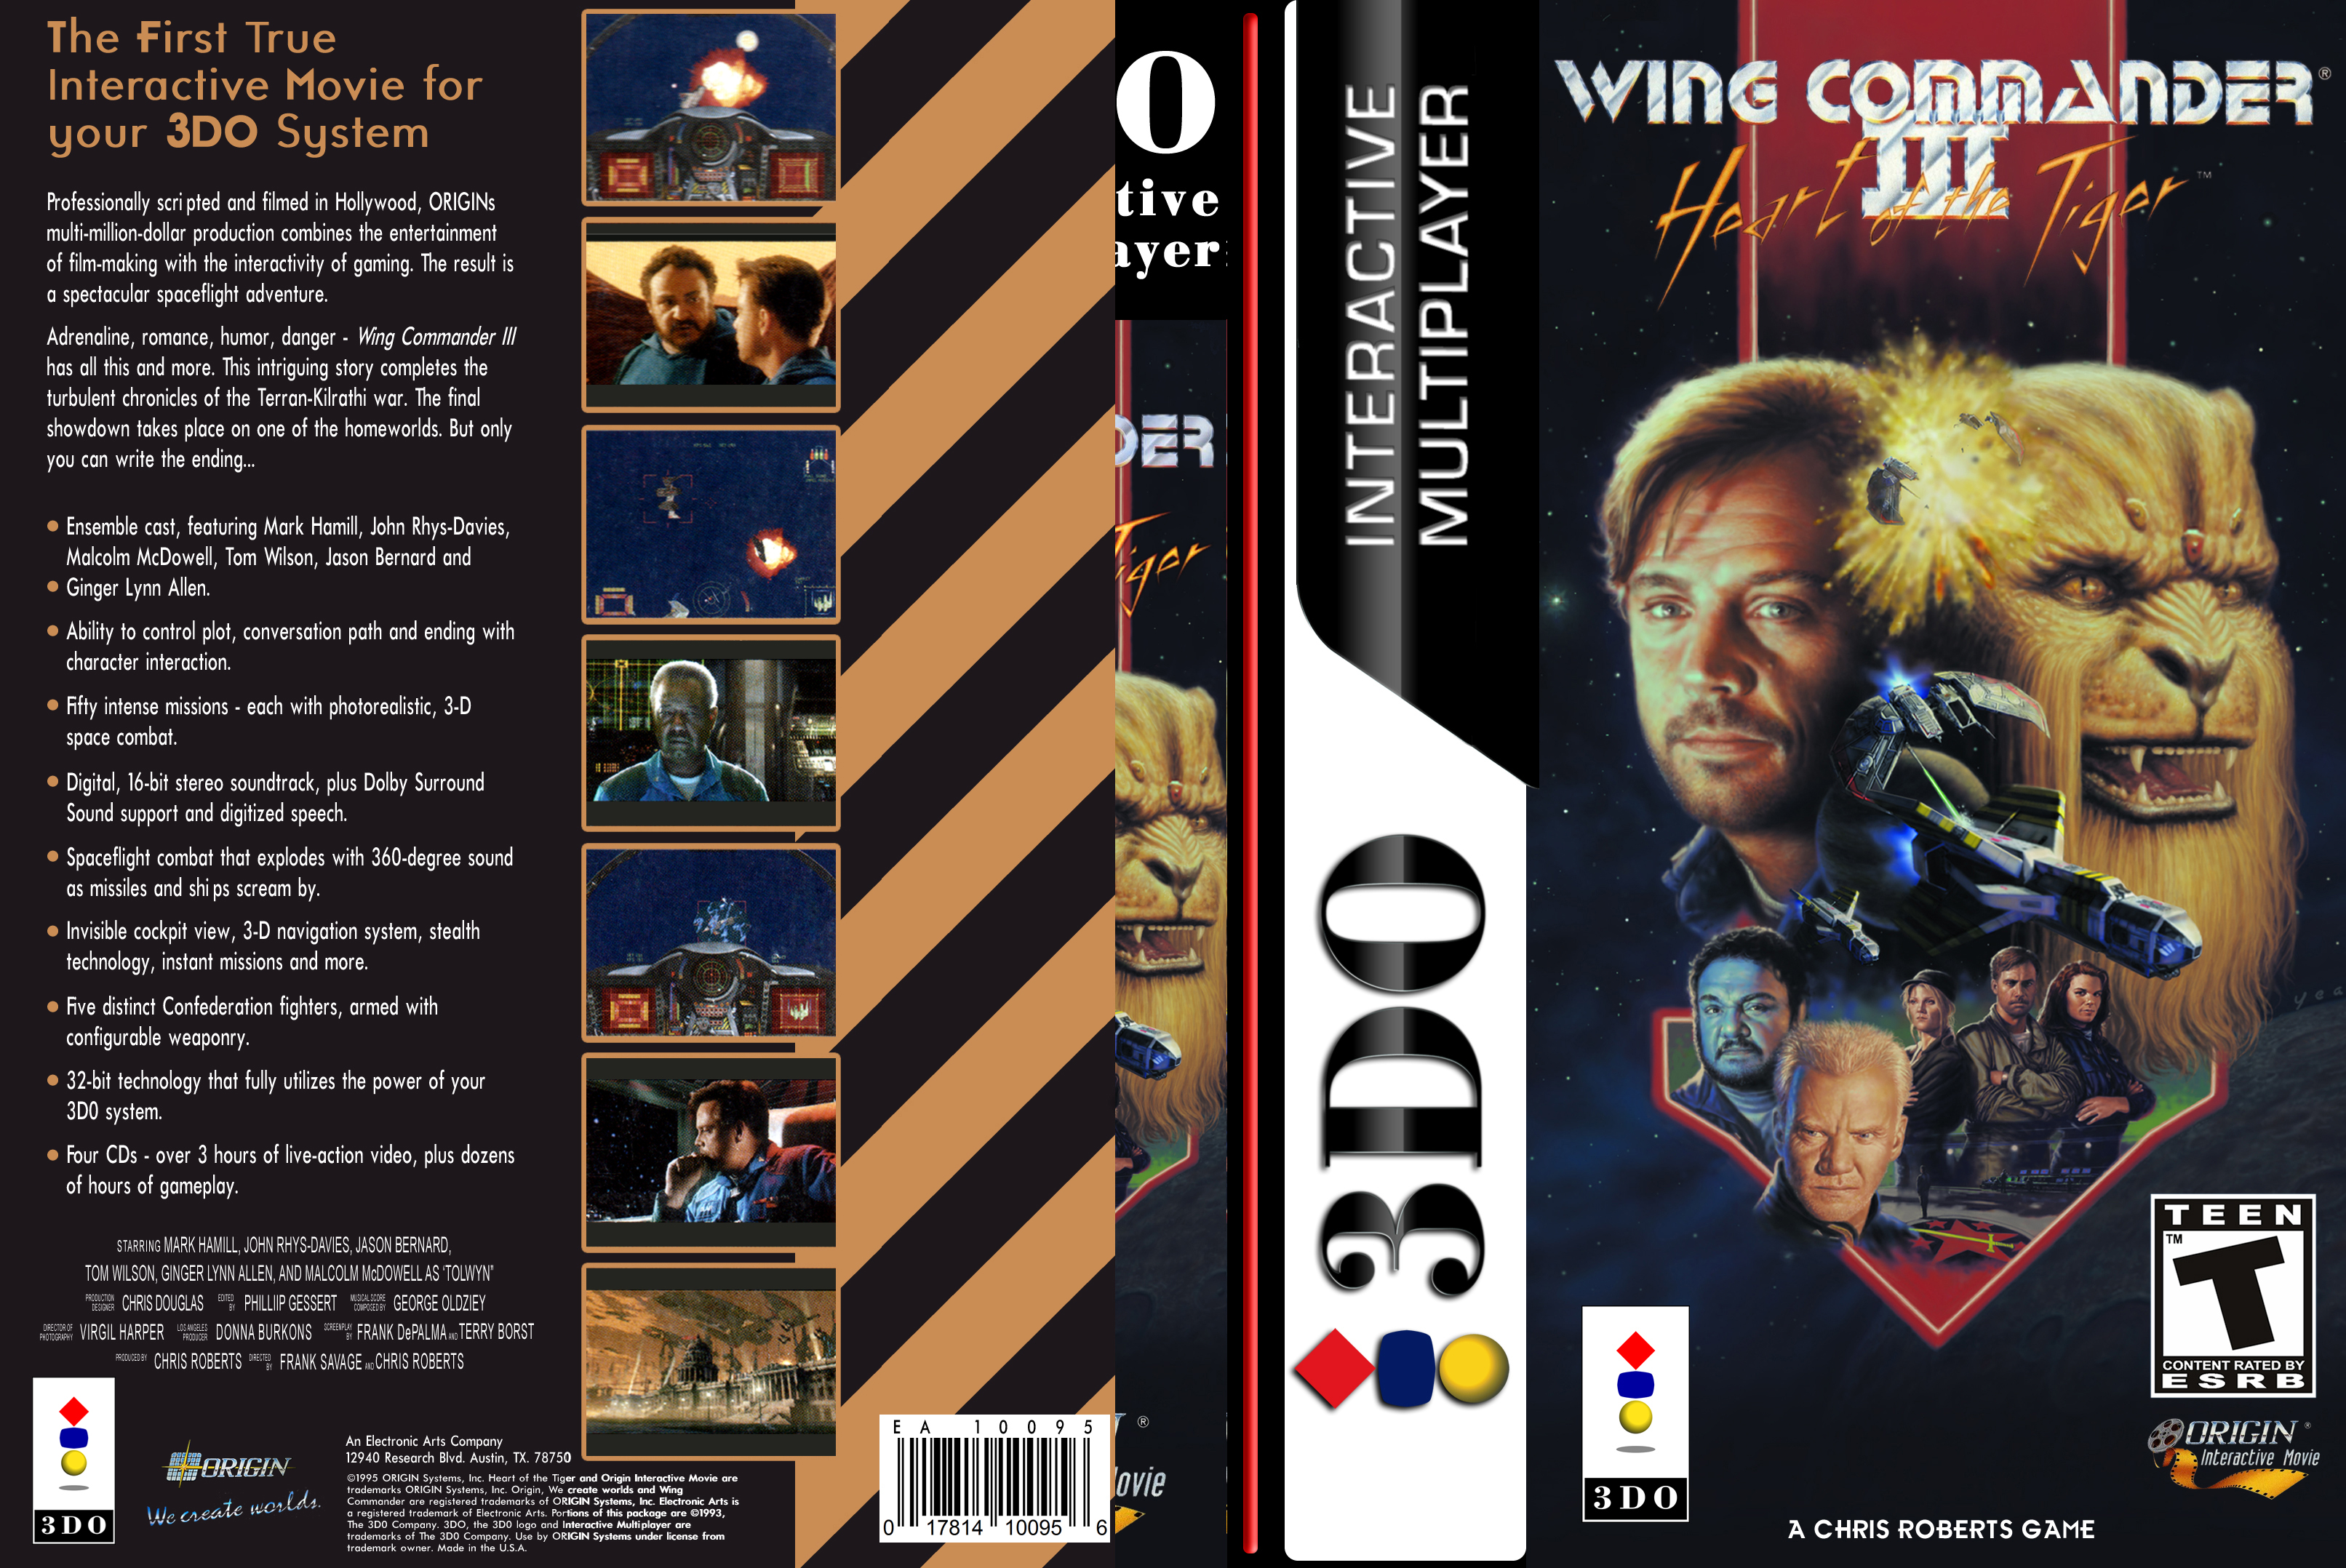 Wing Commander 3 3do Covers Cover Century Over 500 000 Album